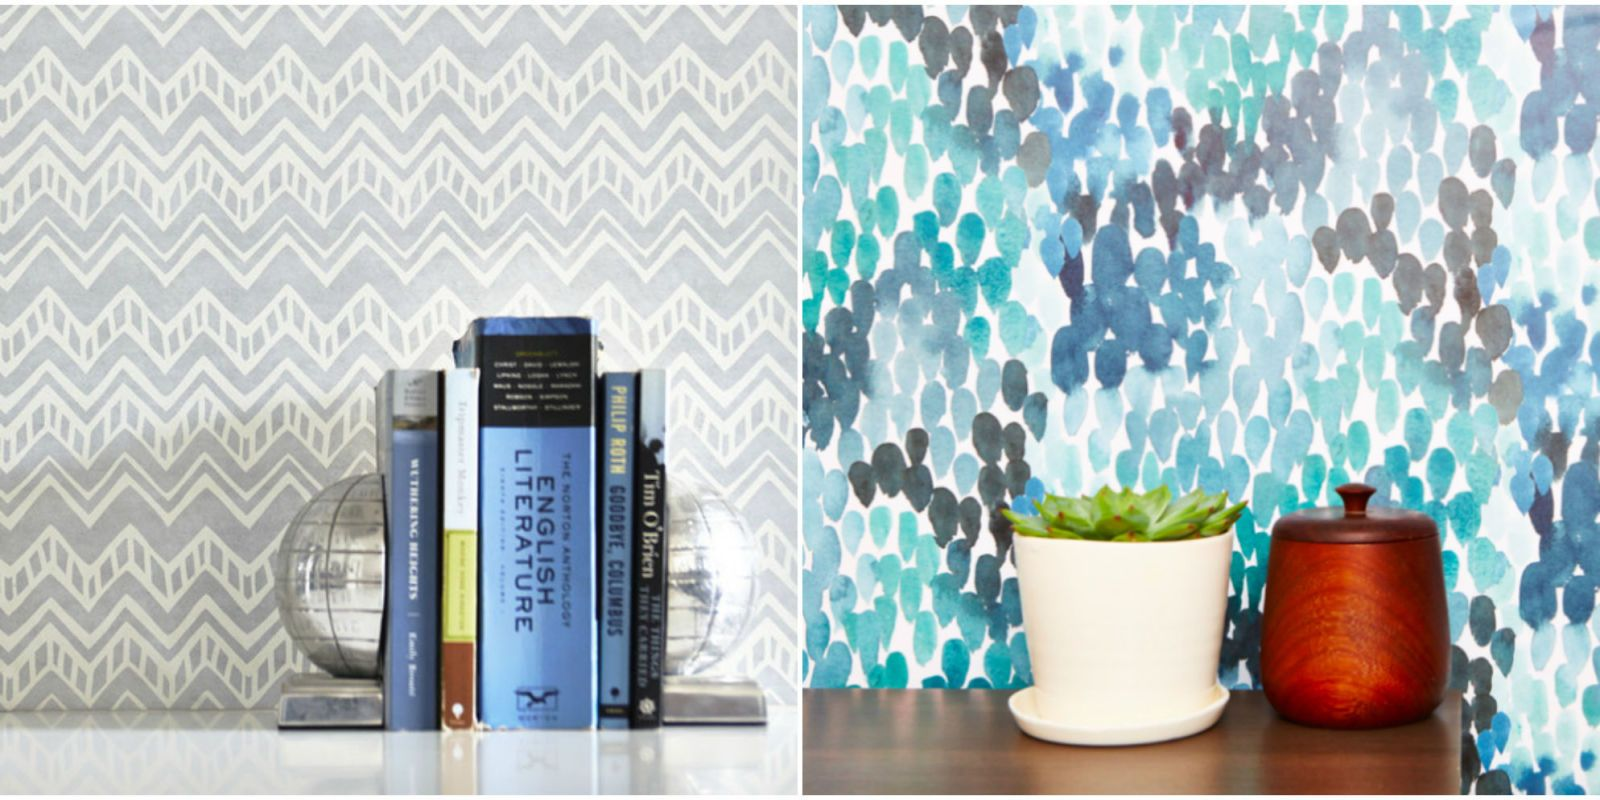 35 Removable Wallpapers That Look Like The Real Thing But Cost Half As Much Temporary Wallpaper Best Removable Wallpaper Removable Wallpaper